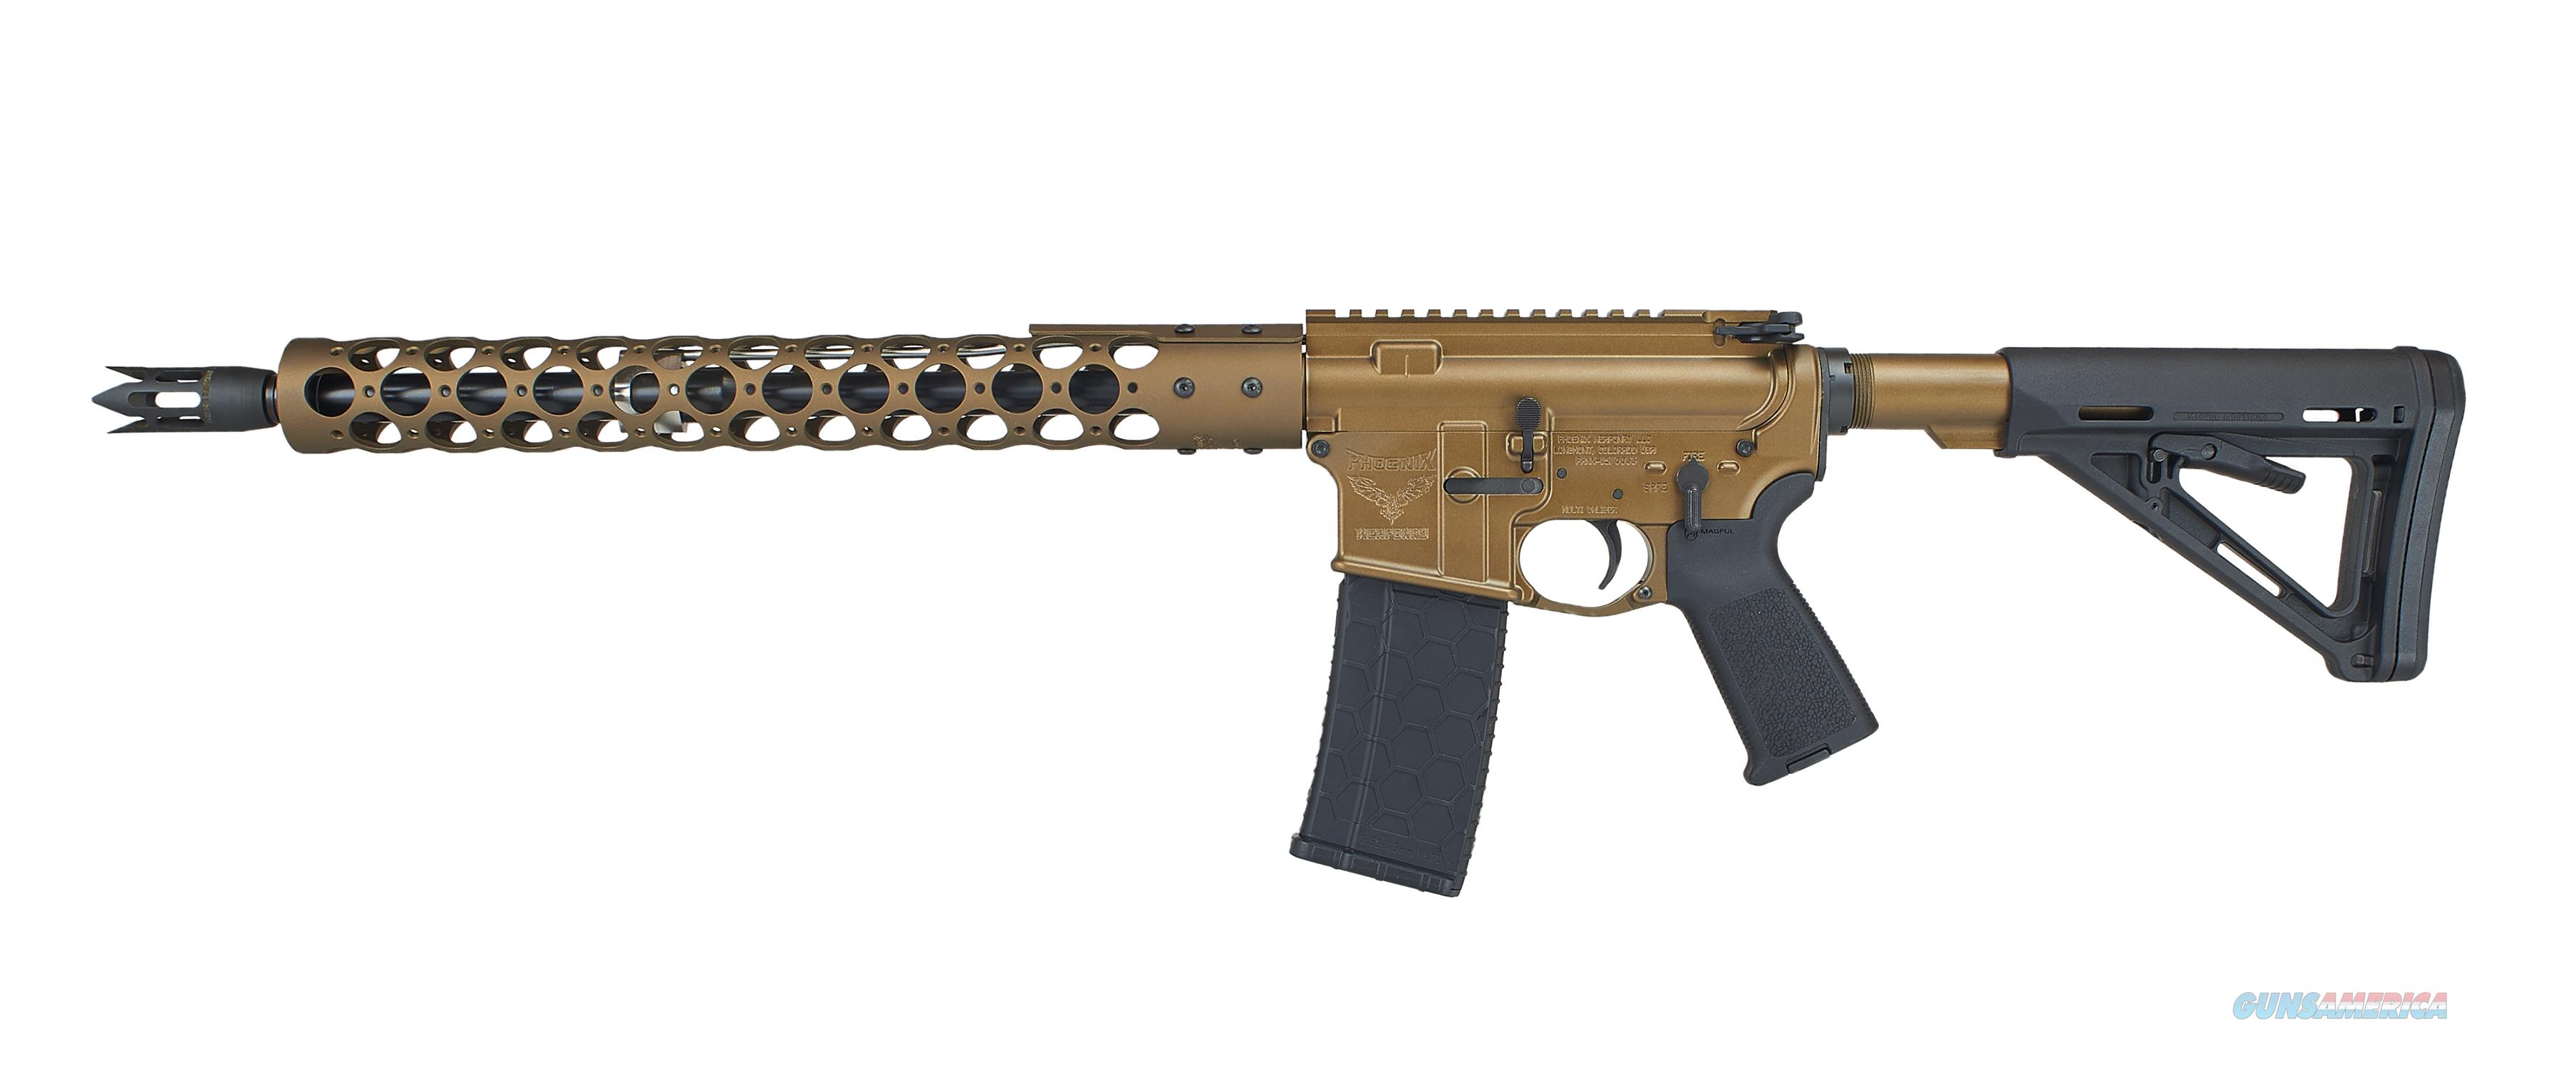 "Phoenix Weaponry AR-15 ""LEXI"" Defensive Carbine  Guns > Rifles > AR-15 Rifles - Small Manufacturers > Complete Rifle"